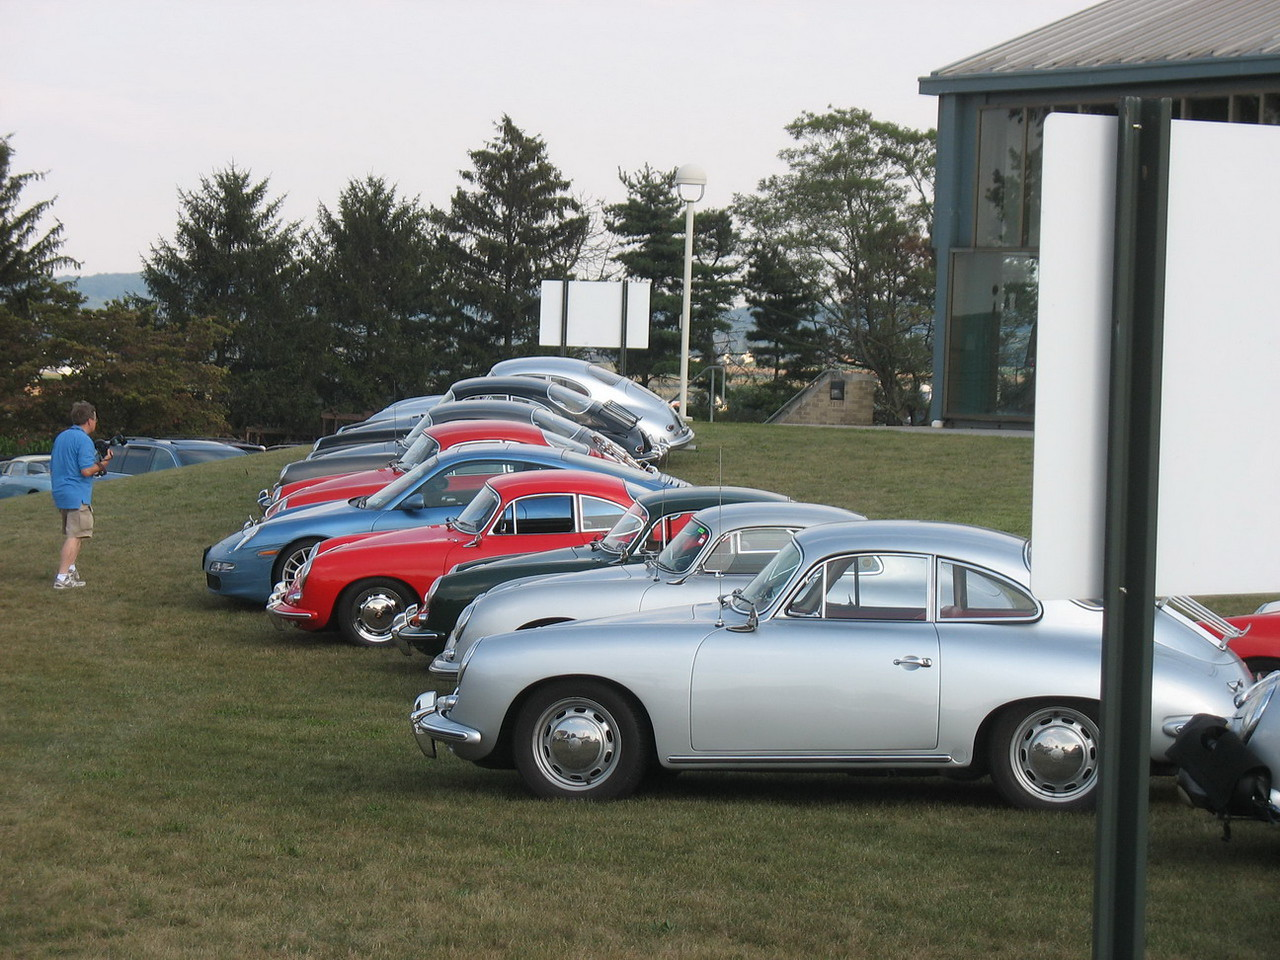 Another row of Porsches, but this one has a later model car in the middle. None of these cars have AC and some people chose to drive newer cars either for comfort or if there was any question about driving the distance in the 356.